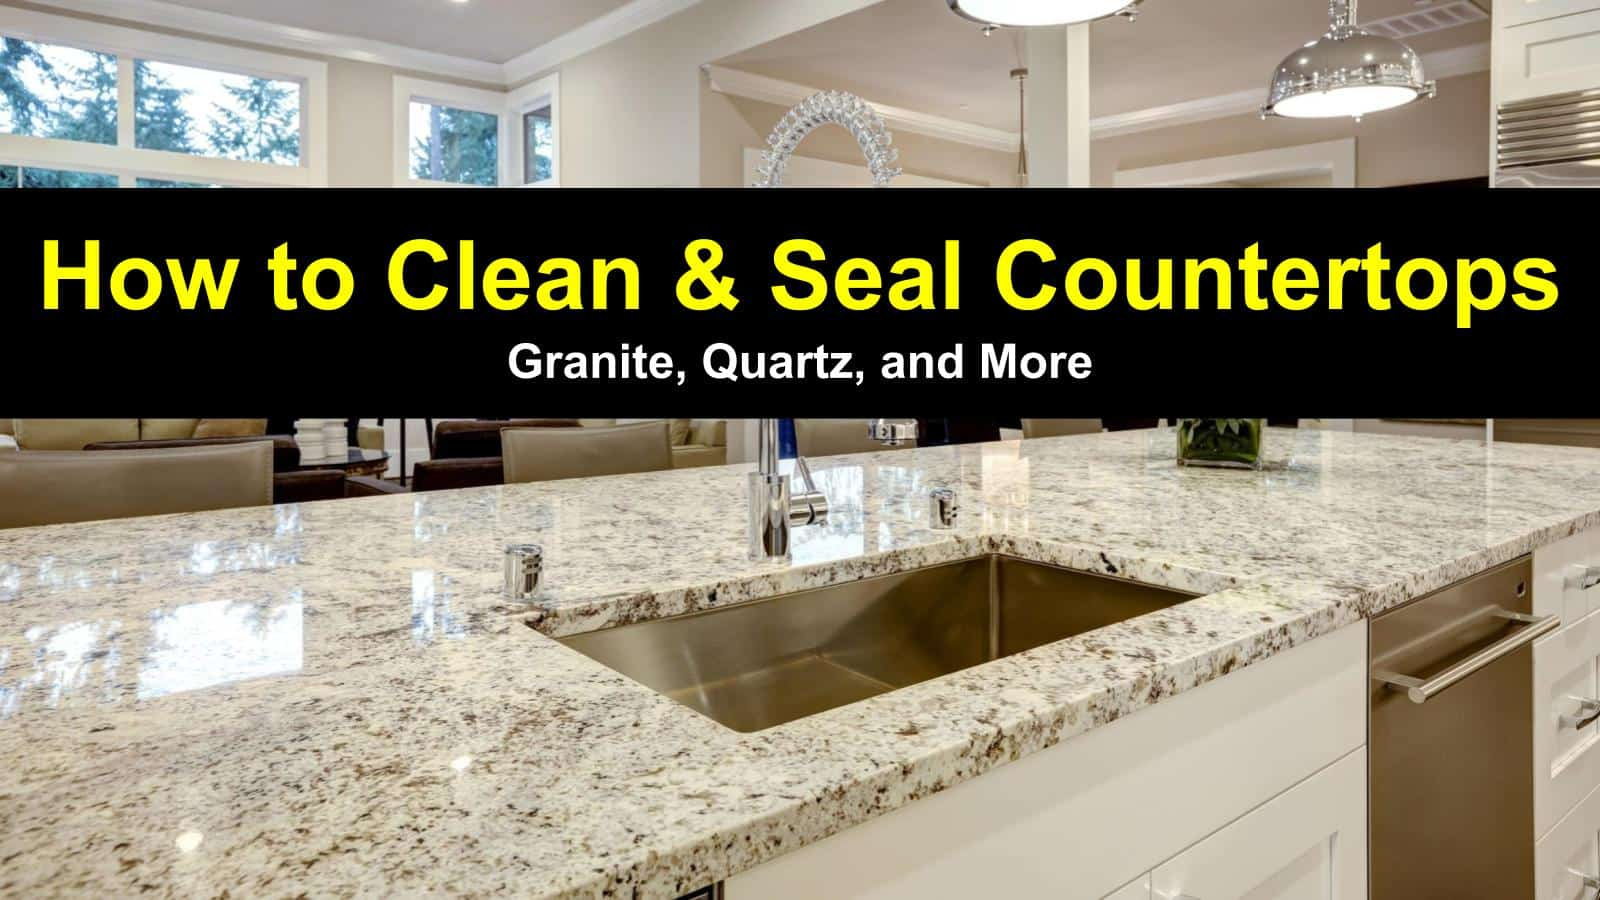 how cleaners refillj stone care granitea clean granite polish sealer oz gallon cleaner home countertop and international depota the sealers cleanerj quartz to amazing